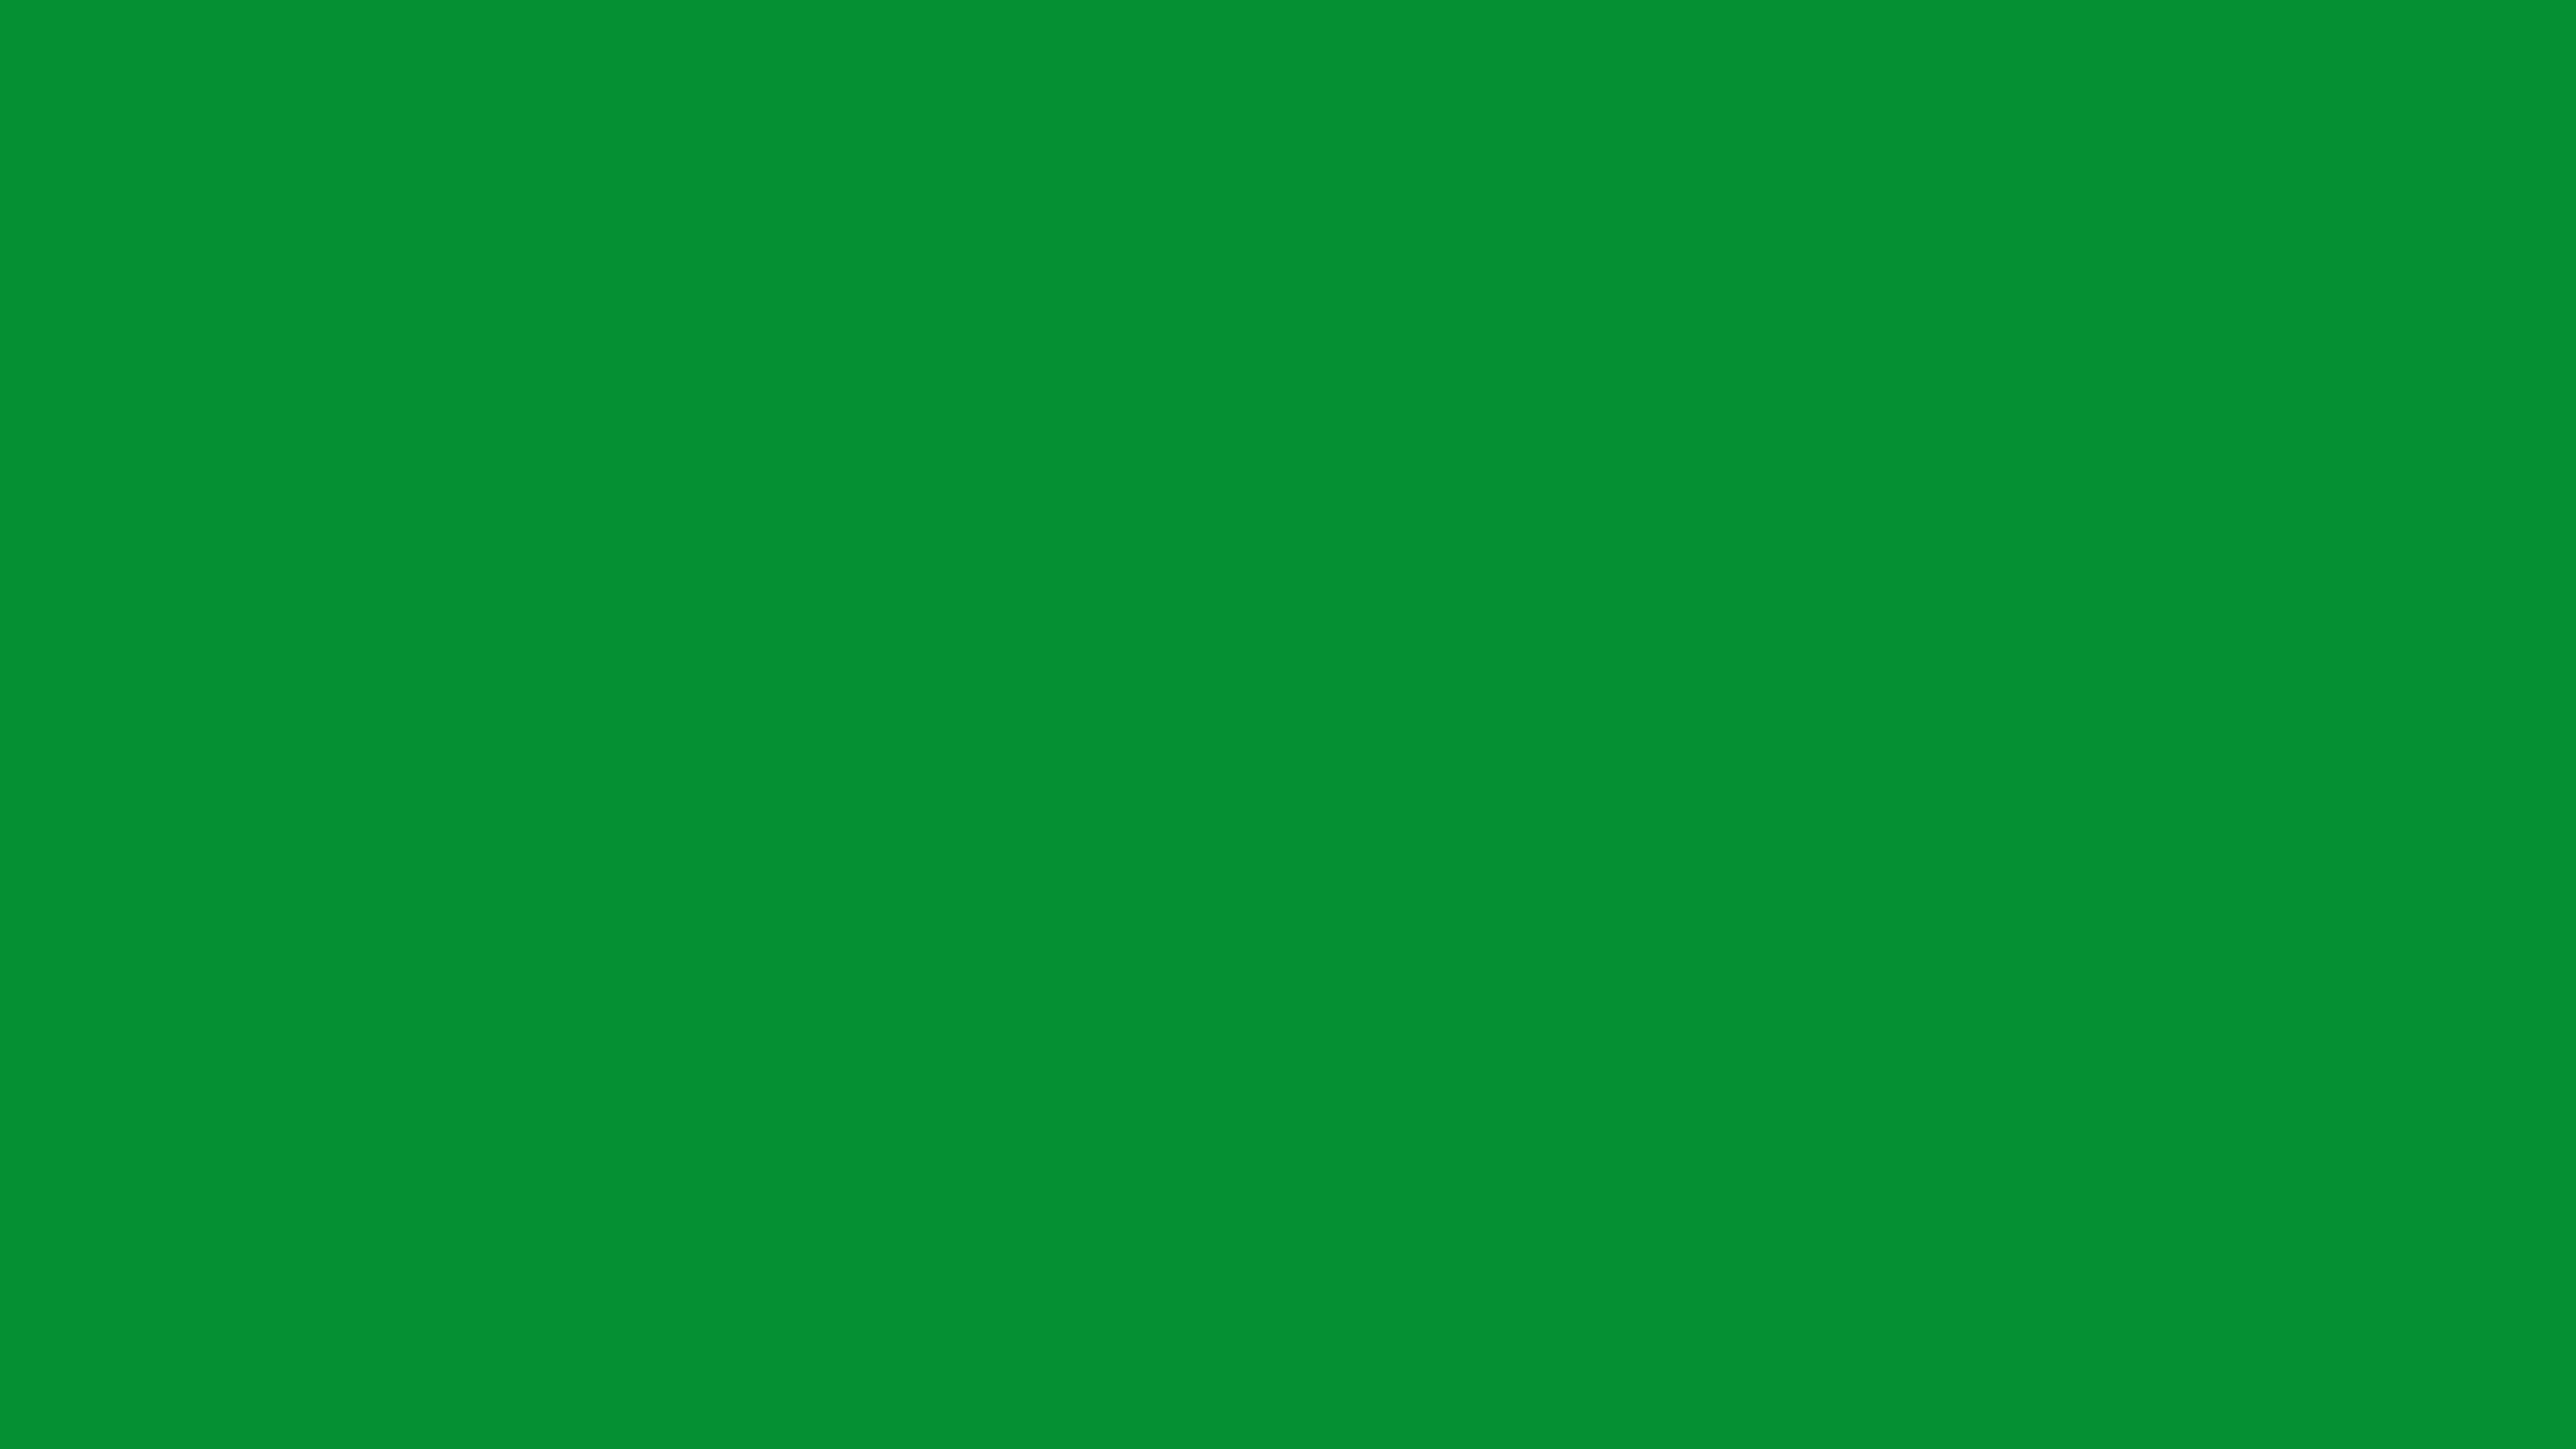 3840x2160 North Texas Green Solid Color Background